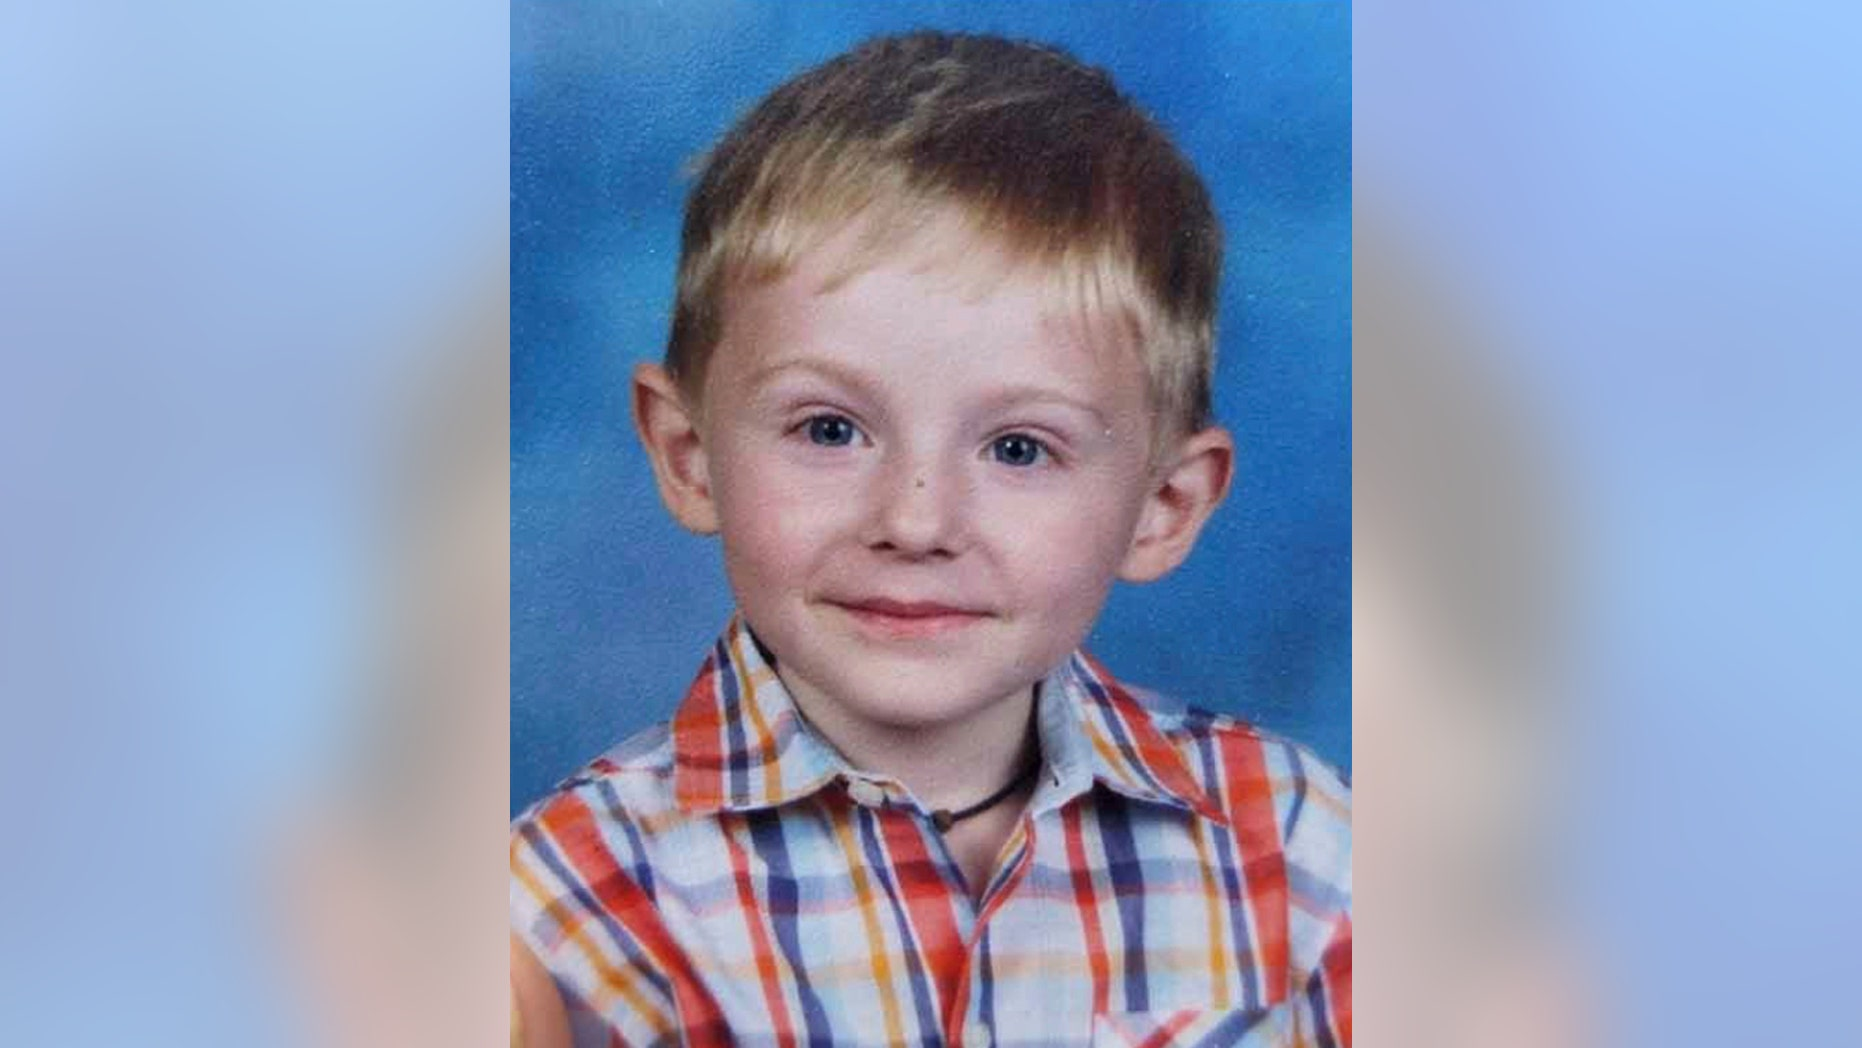 This photo provided by the FBI shows Maddox Ritch. Gastonia Police Chief Robert Helton announced Thursday, Sept. 27, 2018 that officials believed the body searchers found was that of Maddox Ritch. The boy's father said he ran off from him as he and a friend walked at Rankin Lake Park last weekend. Ian Ritch said he couldn't catch up with his son because he has neuropathy in his feet due to diabetes. (FBI via AP)